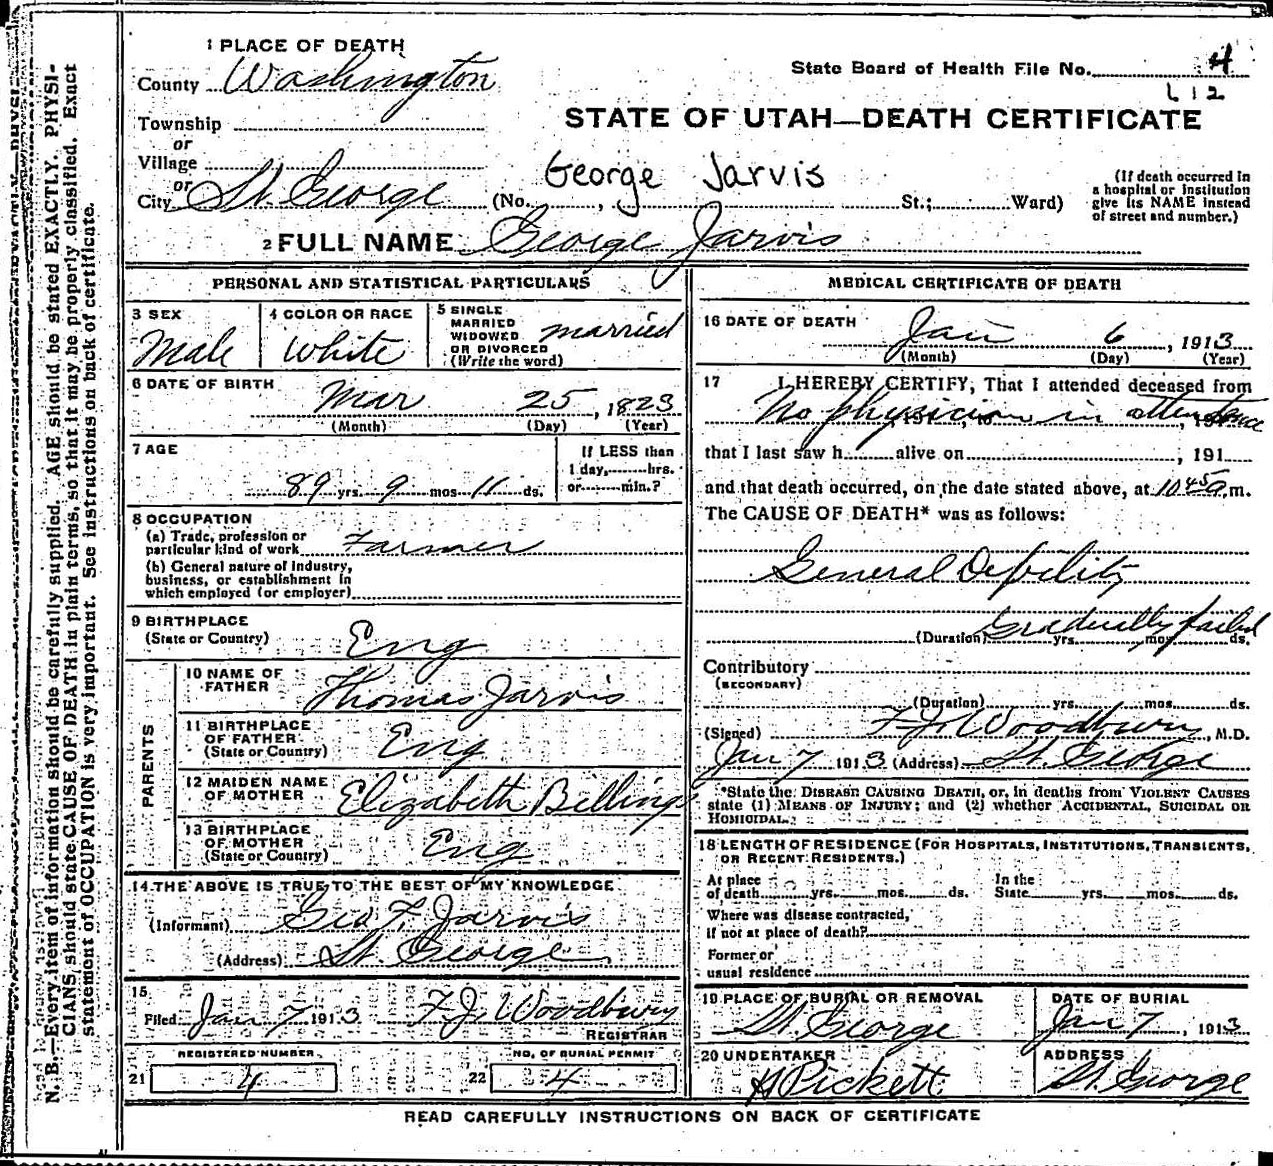 Theancestorfiles george and ann prior jarvis death certificates here are copies of the death certificates for george and ann prior jarvis george died on january 6 1913 1betcityfo Image collections